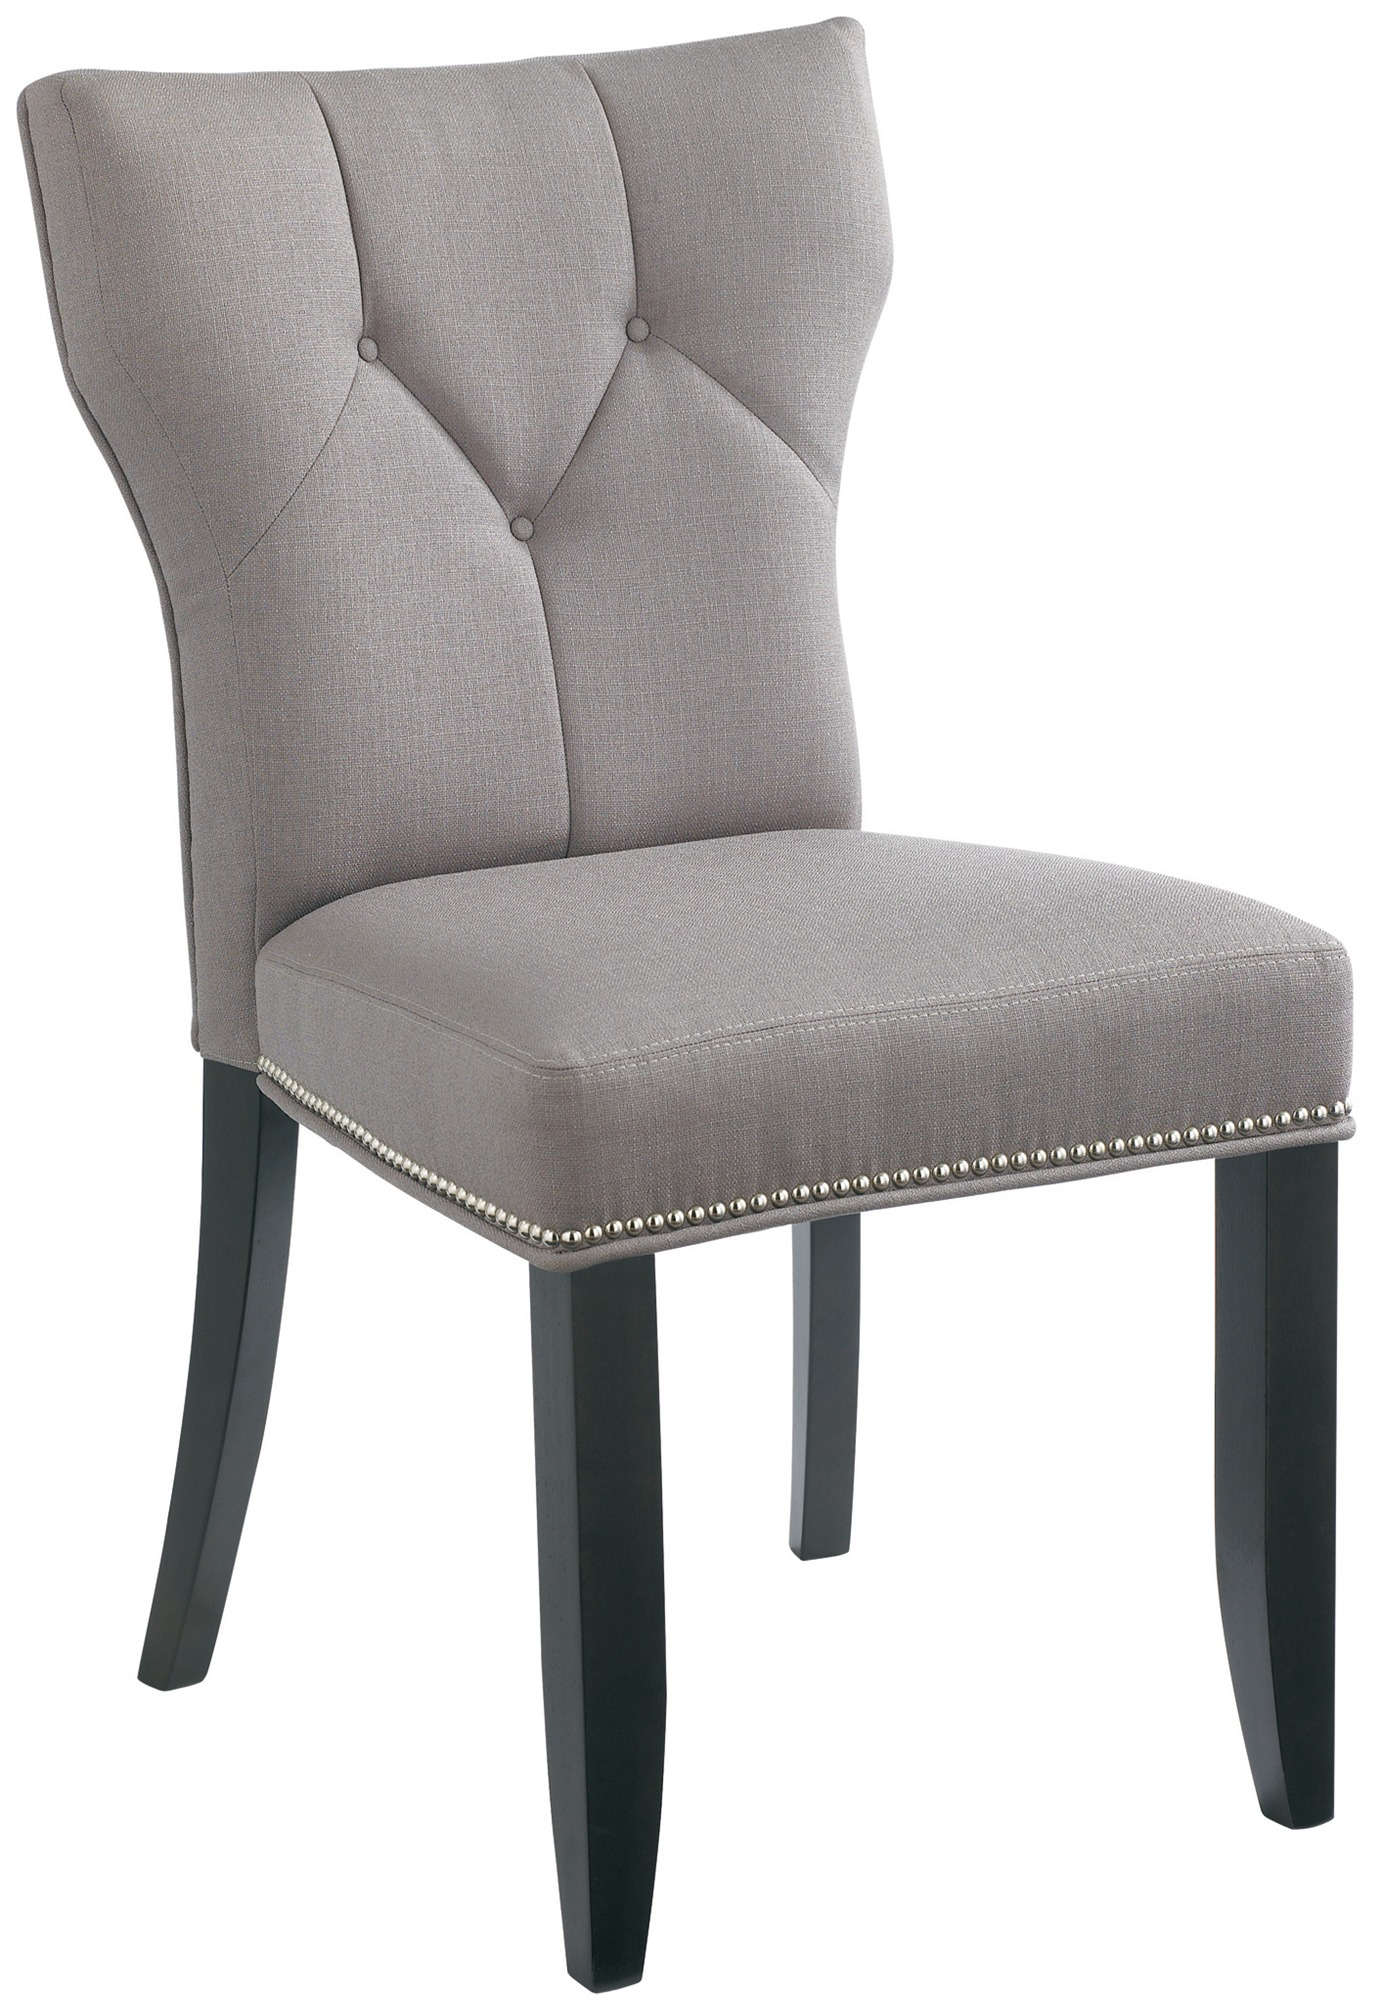 Tufted Dining Chair | Tufted Nailhead Dining Chair | Tufted Dining Chairs with Nailheads